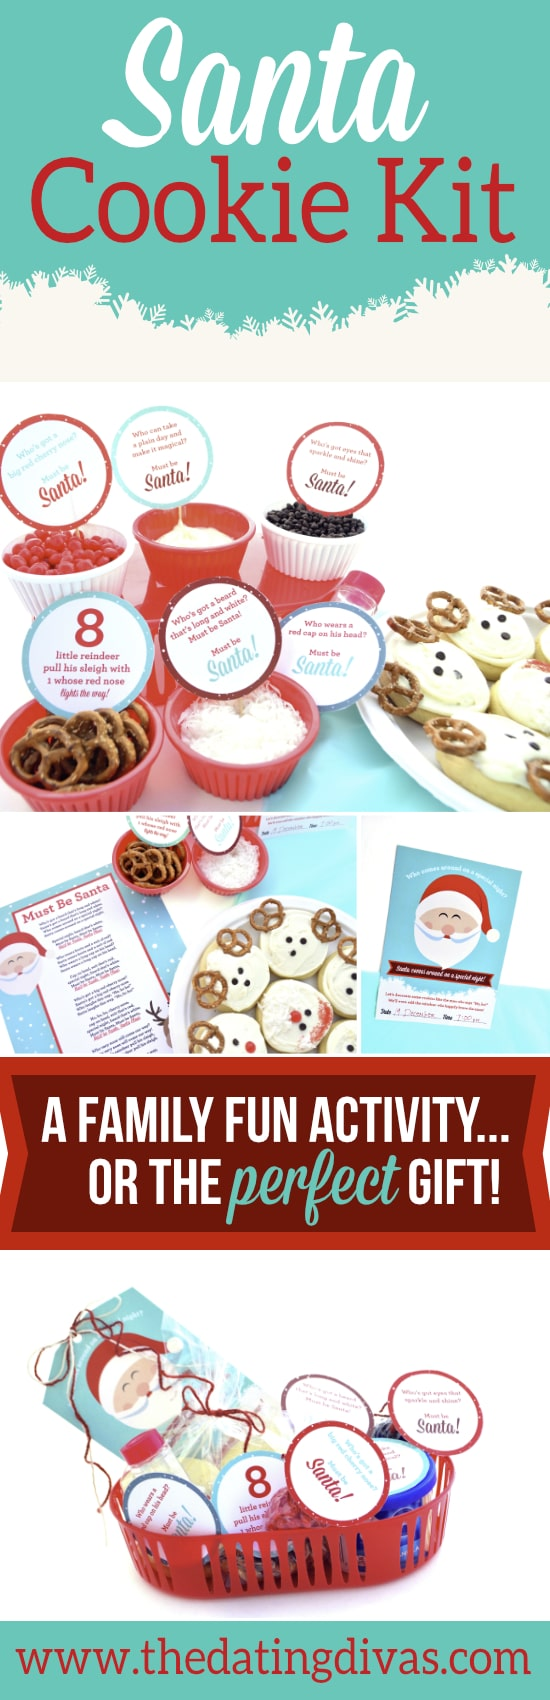 Give the gift of time to your own family - or a neighbor - with this Santa Cookie Kit.